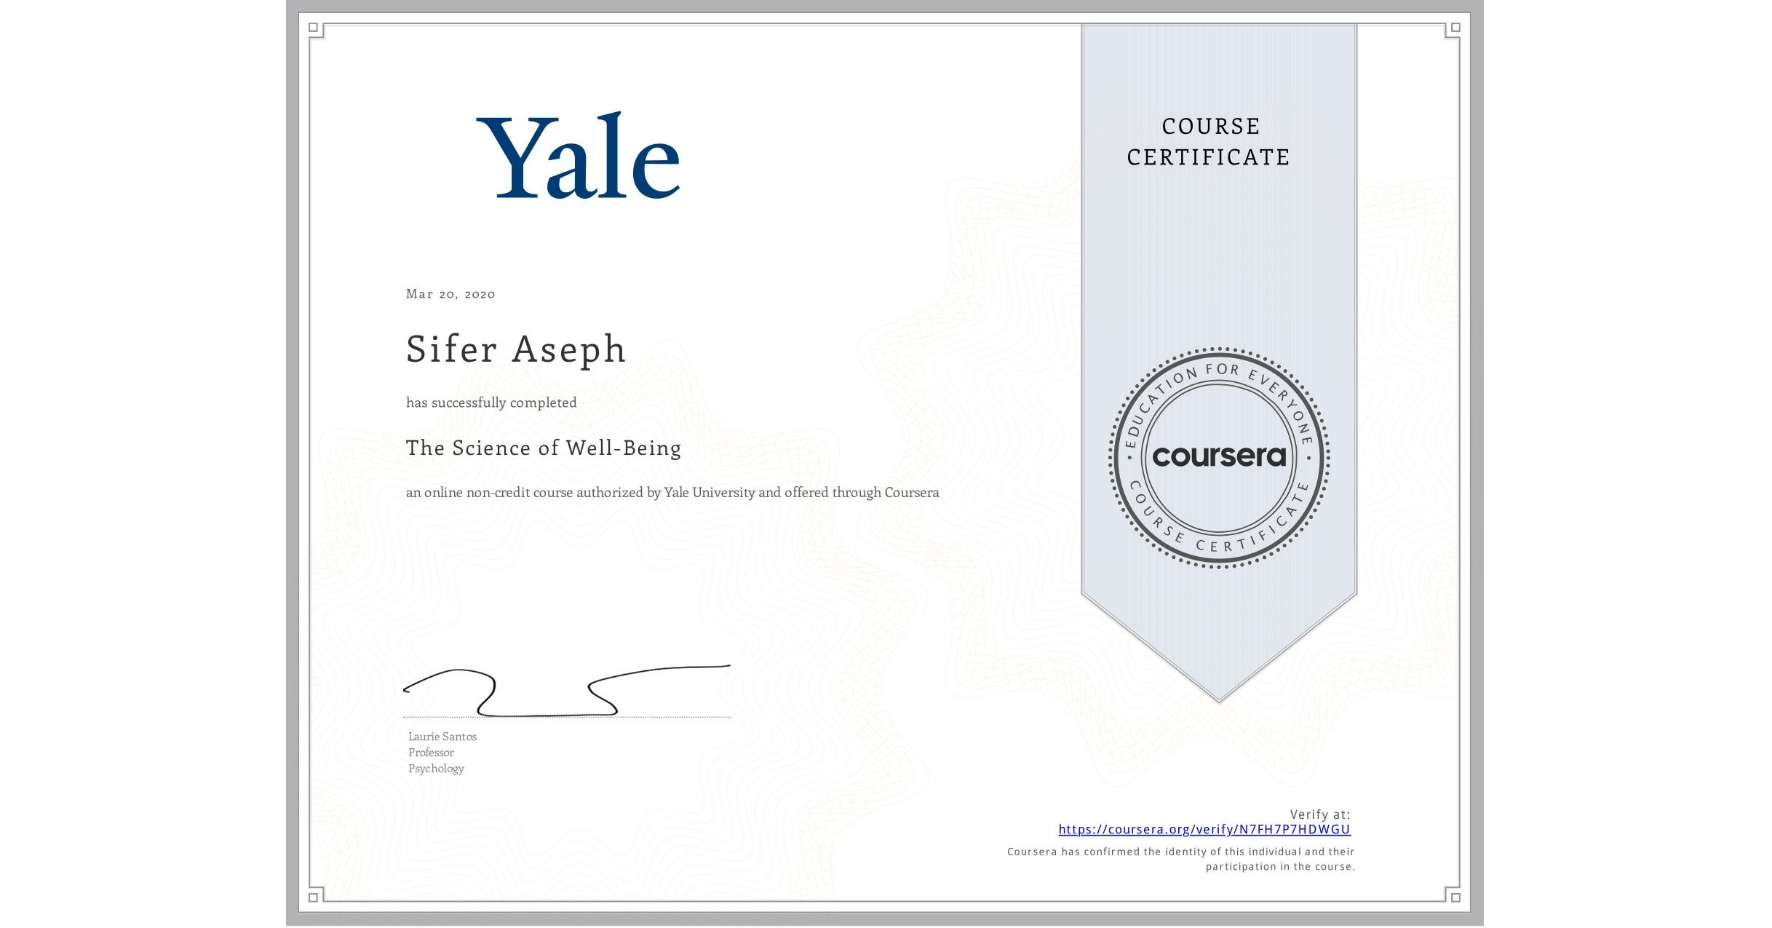 View certificate for Sifer Aseph, The Science of Well-Being, an online non-credit course authorized by Yale University and offered through Coursera